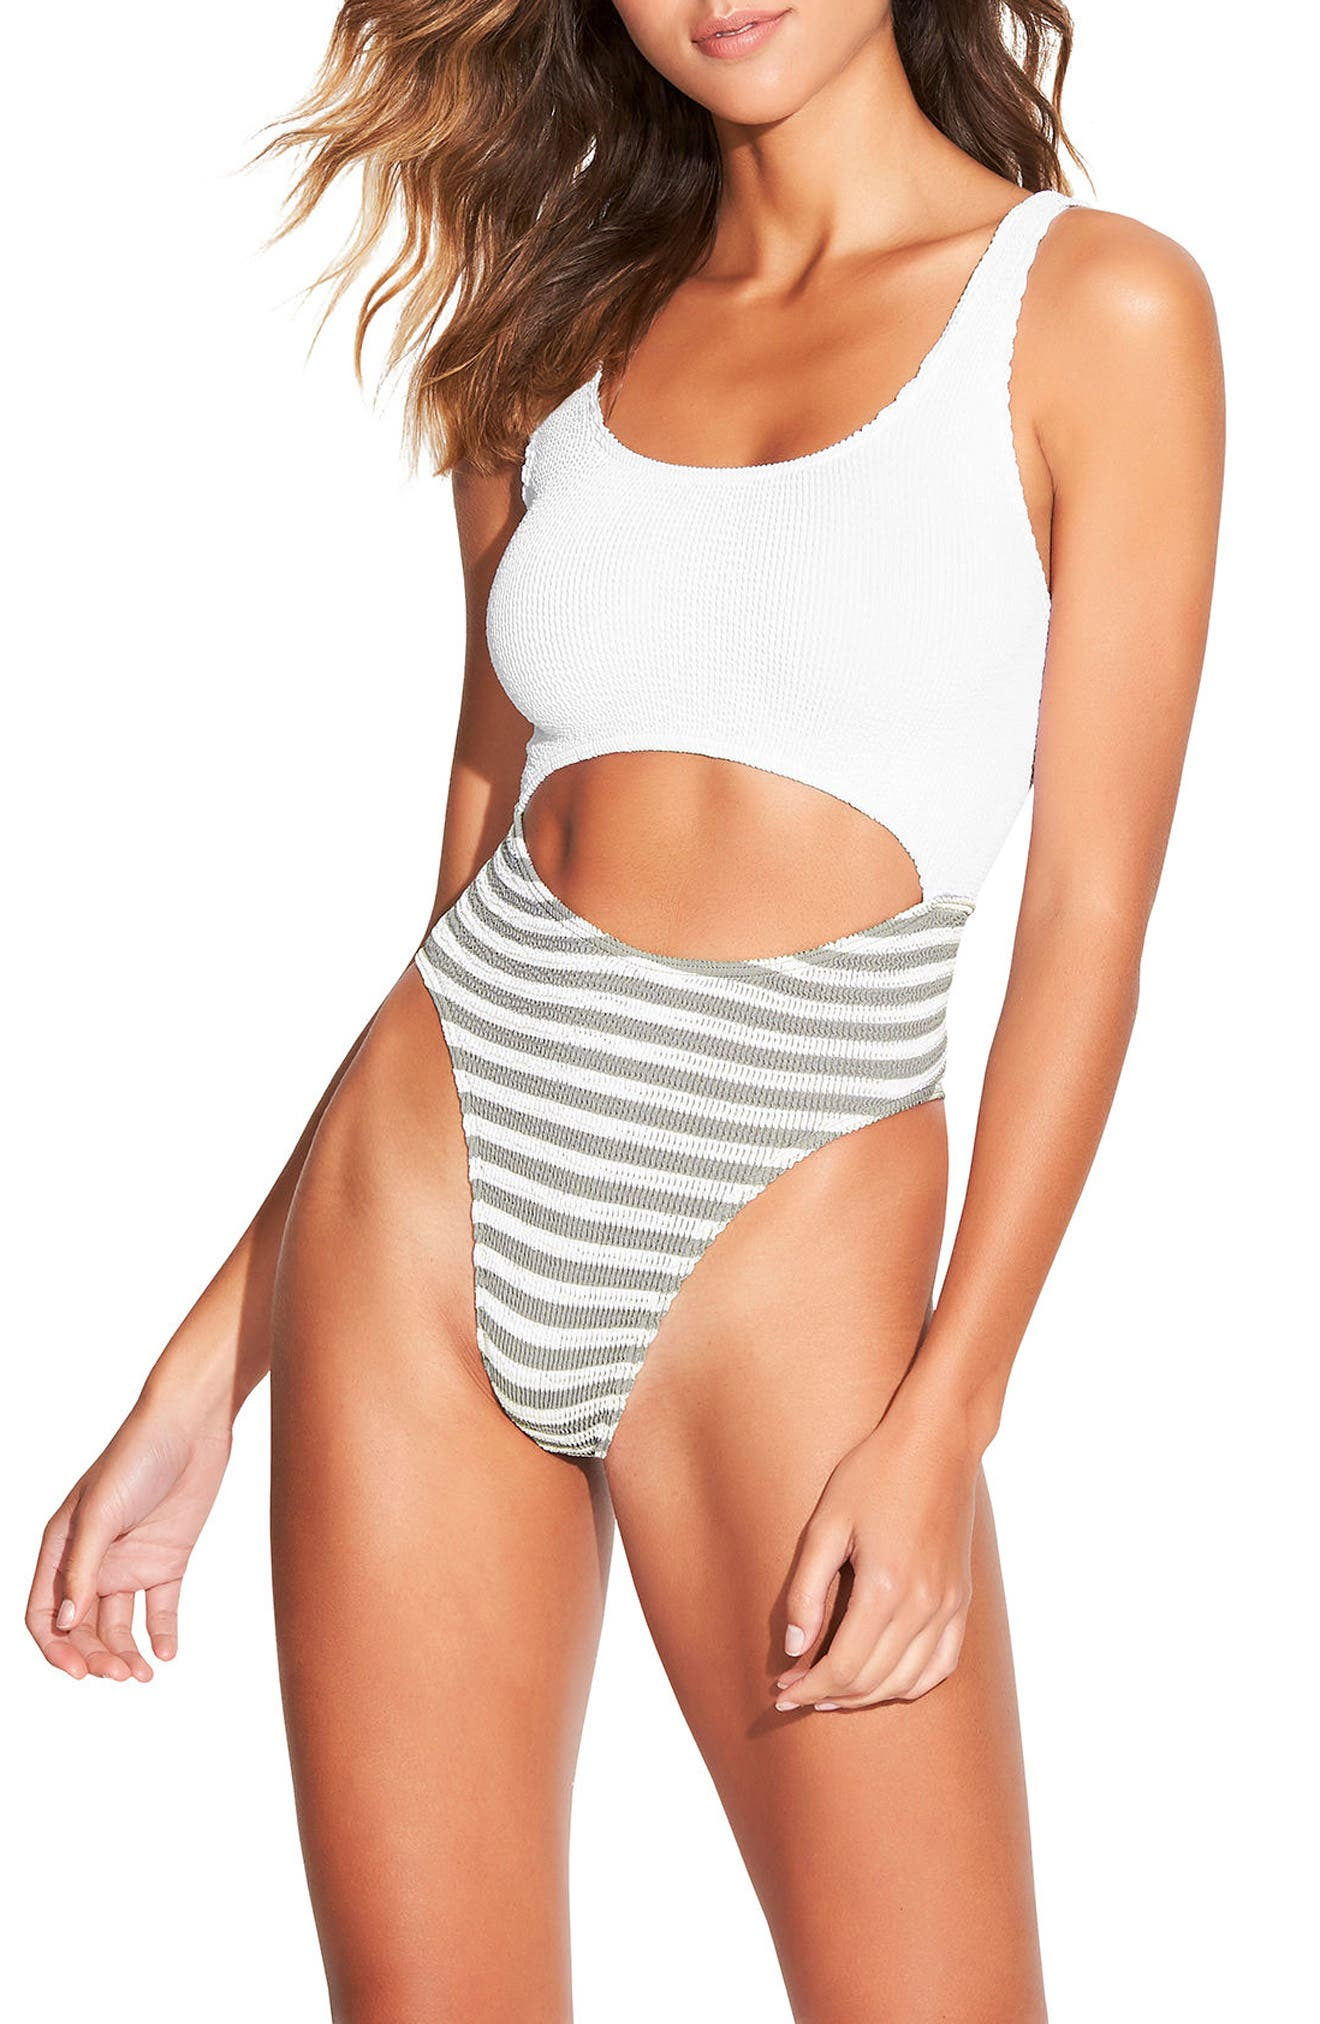 The Mishy One-Piece Swimsuit,                             Main thumbnail 1, color,                             White/ Stone